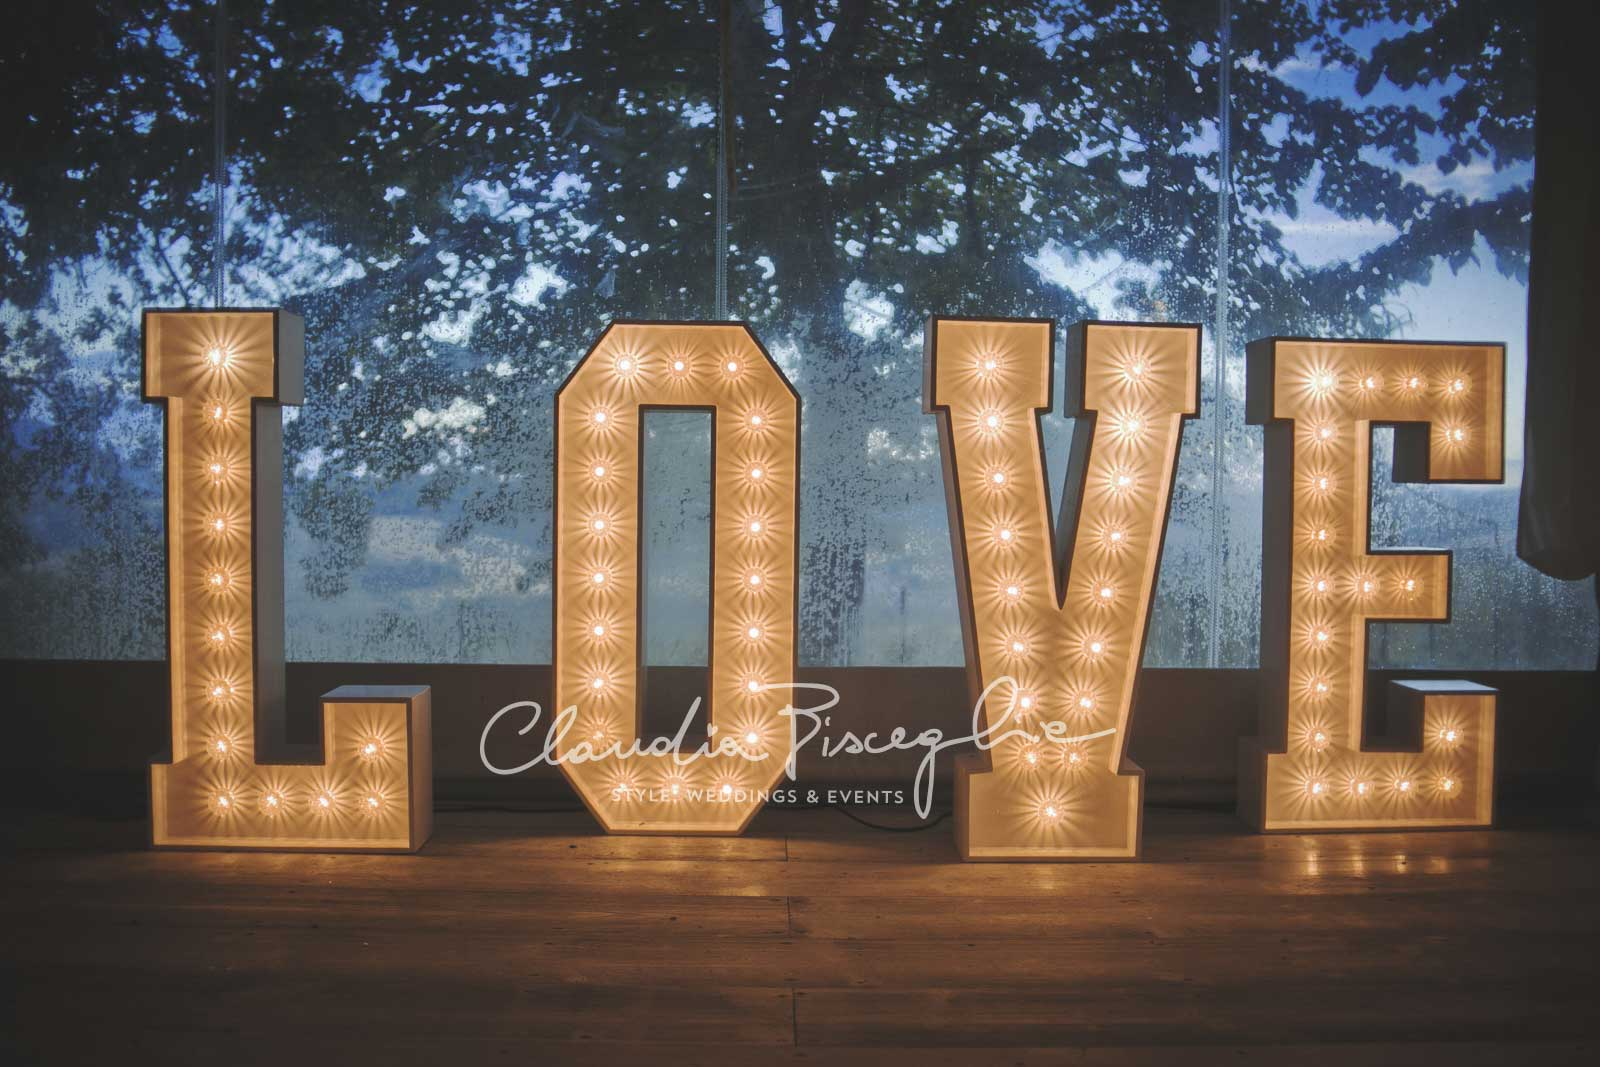 43-Love-is-in-the-air-lights-decoration